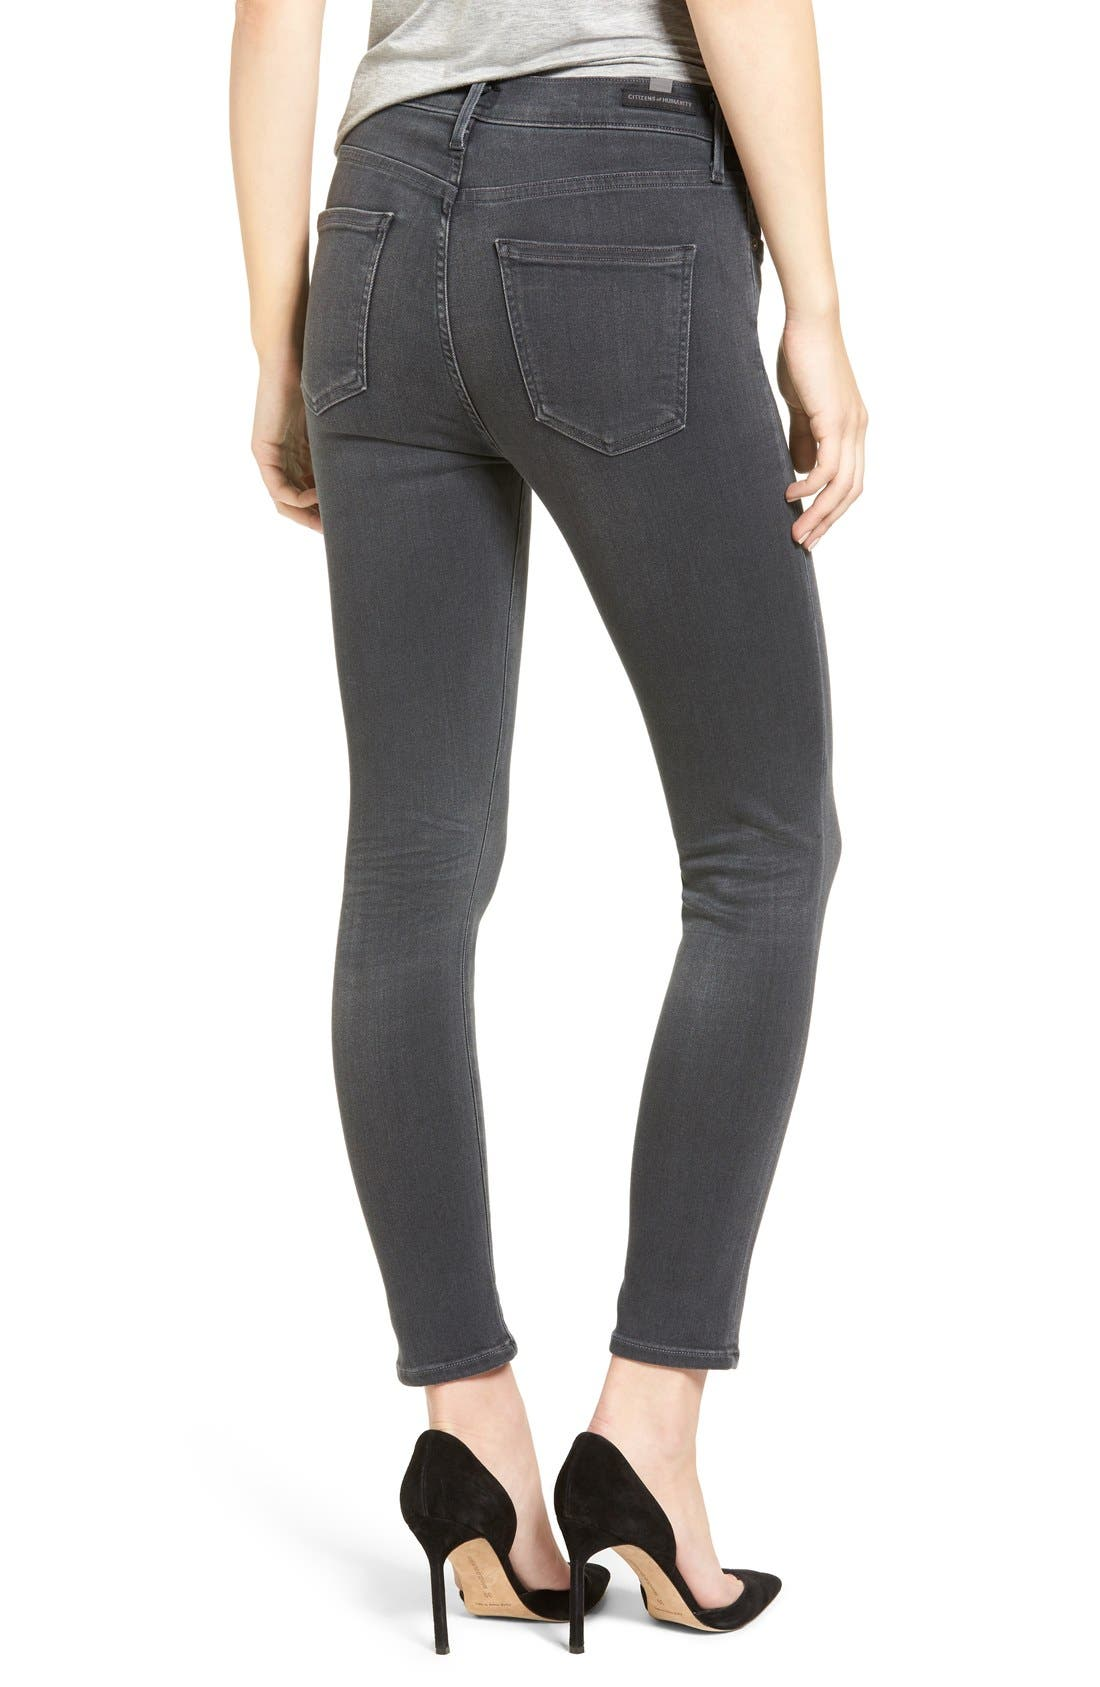 Alternate Image 2  - Citizens of Humanity Rocket High Waist Crop Skinny Jeans (Chateau)